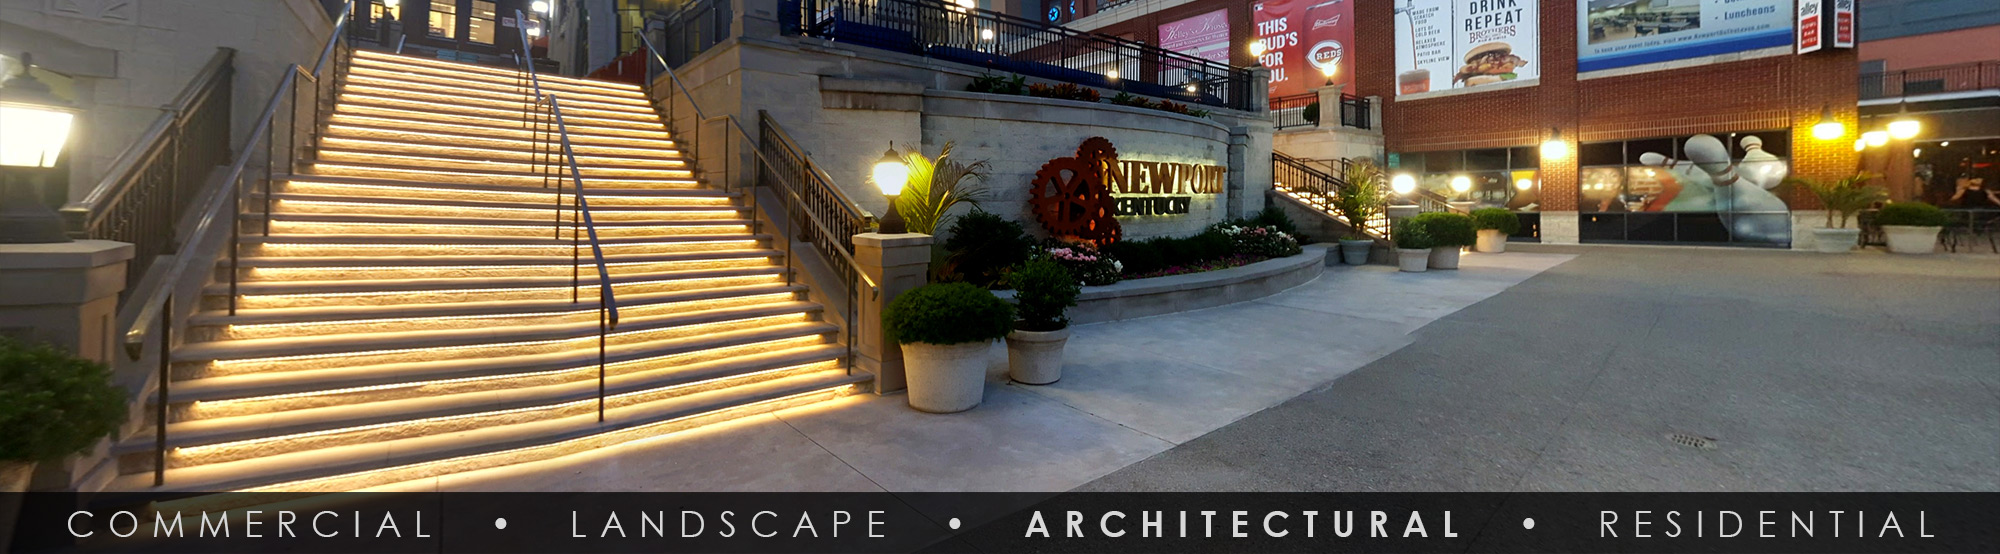 SGi LED Architectural Step Lighting Newport on the Levee